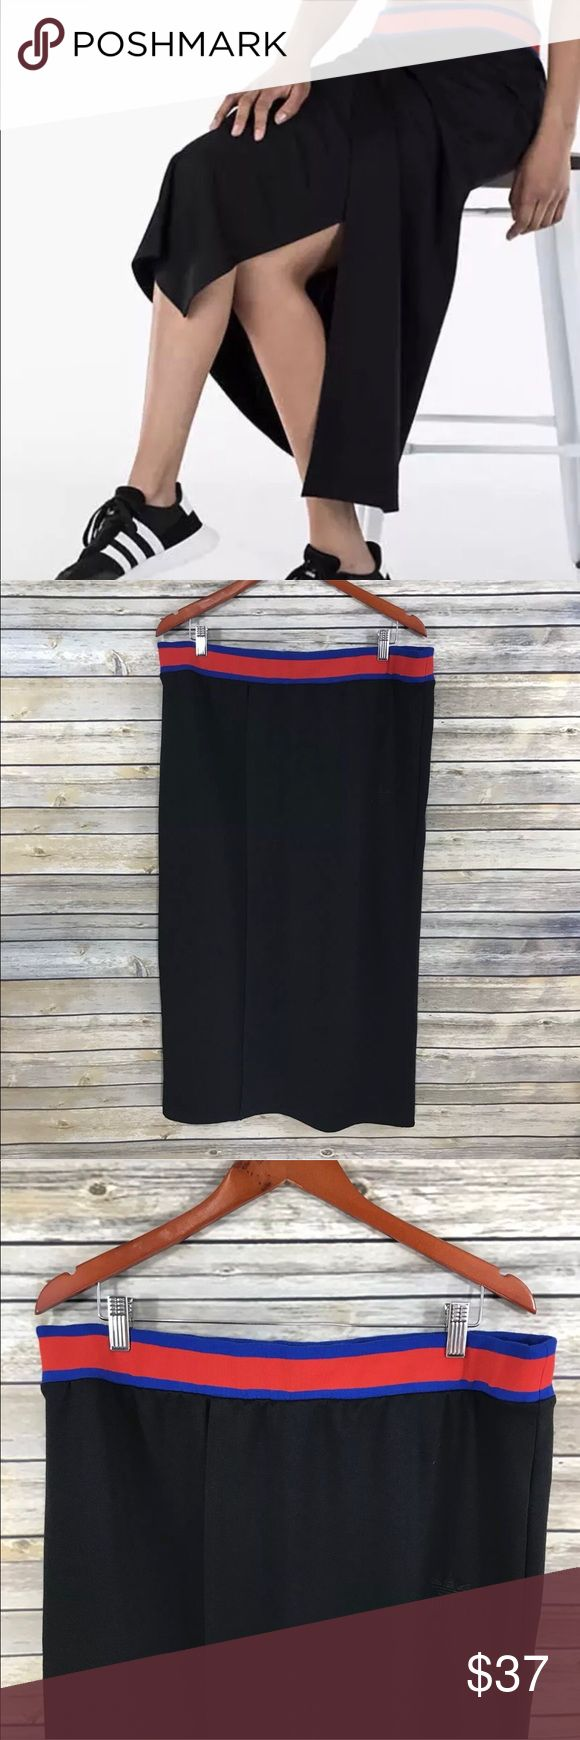 """Adidas Originals Embellished Arts Maxi Skirt Approximate Measurements (measured laying flat and unstretched) • Waist: 17"""" • Length: 34"""" adidas Skirts Maxi"""